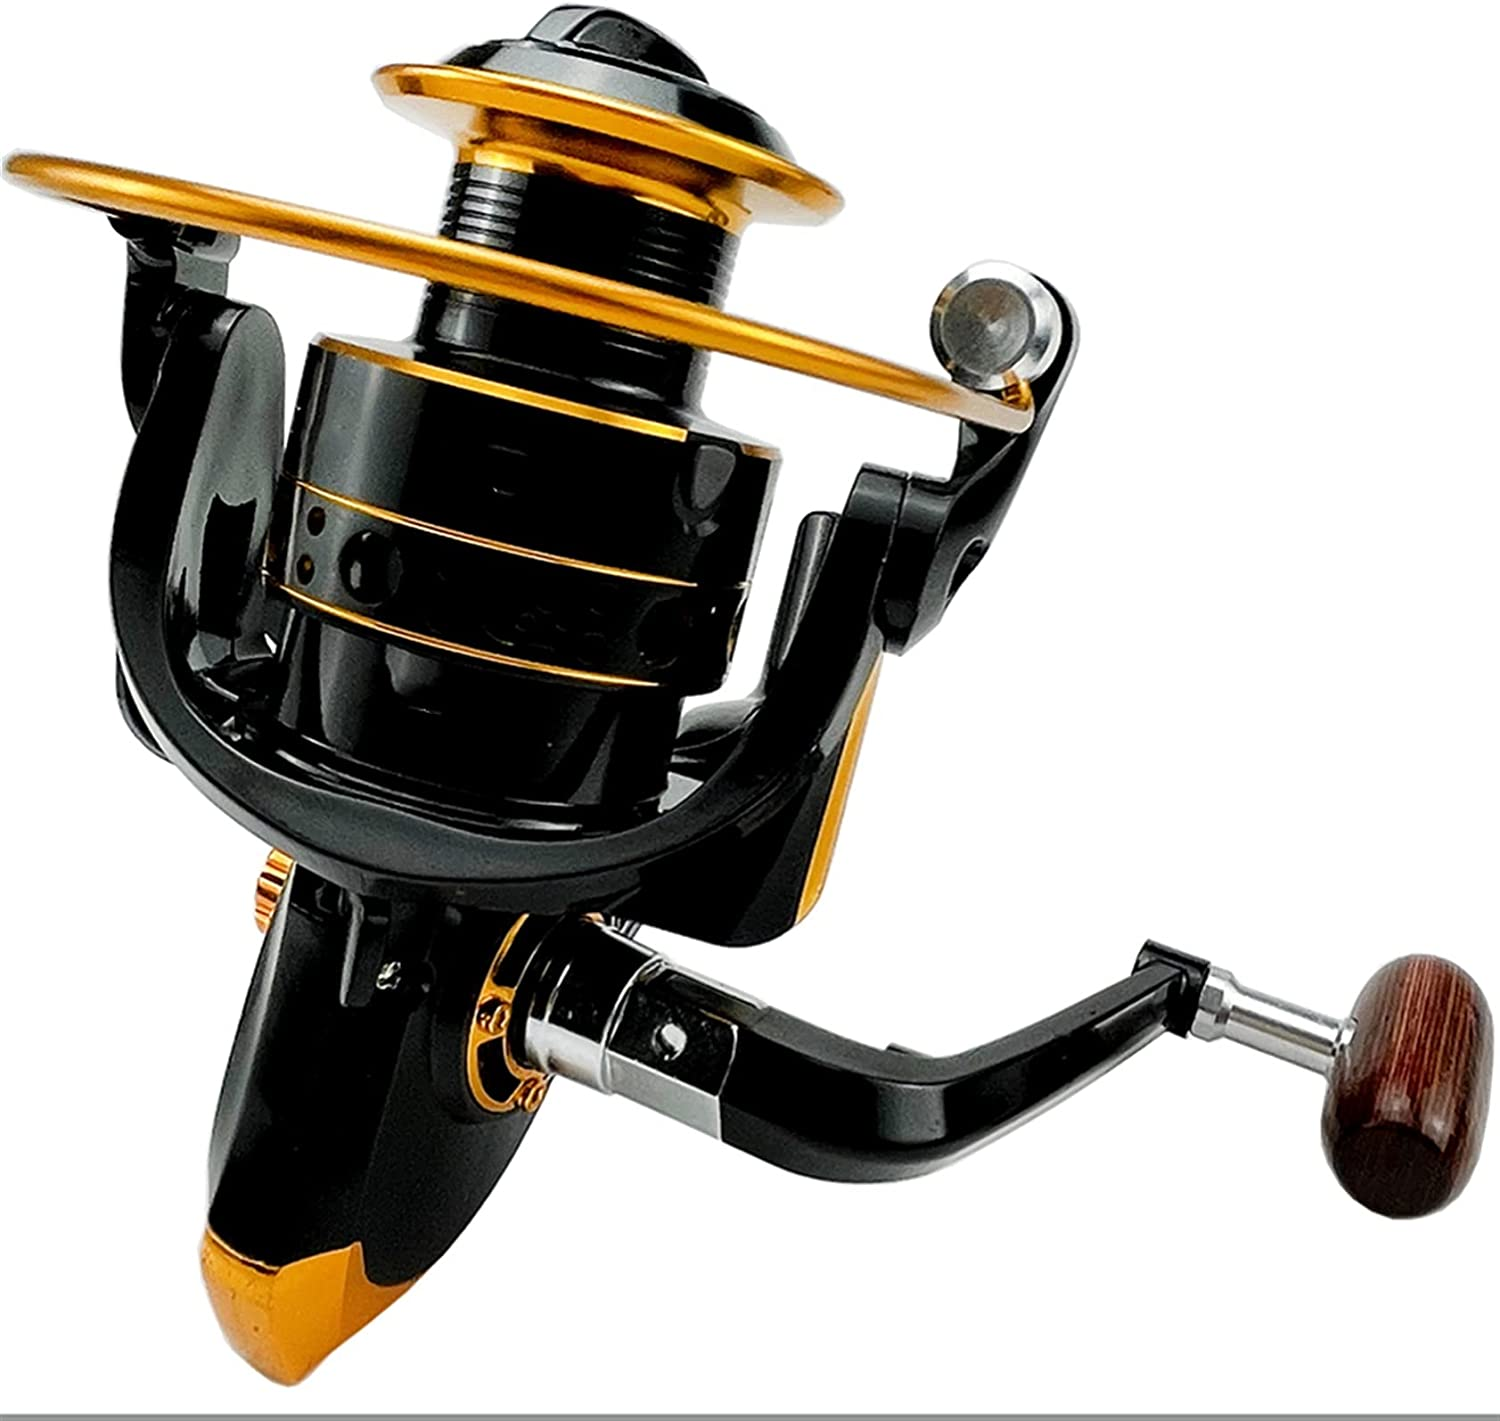 ZMMZ 12+1BB Fishing Reel Left Foldable Max 83% OFF Handle Manufacturer direct delivery Right Spin